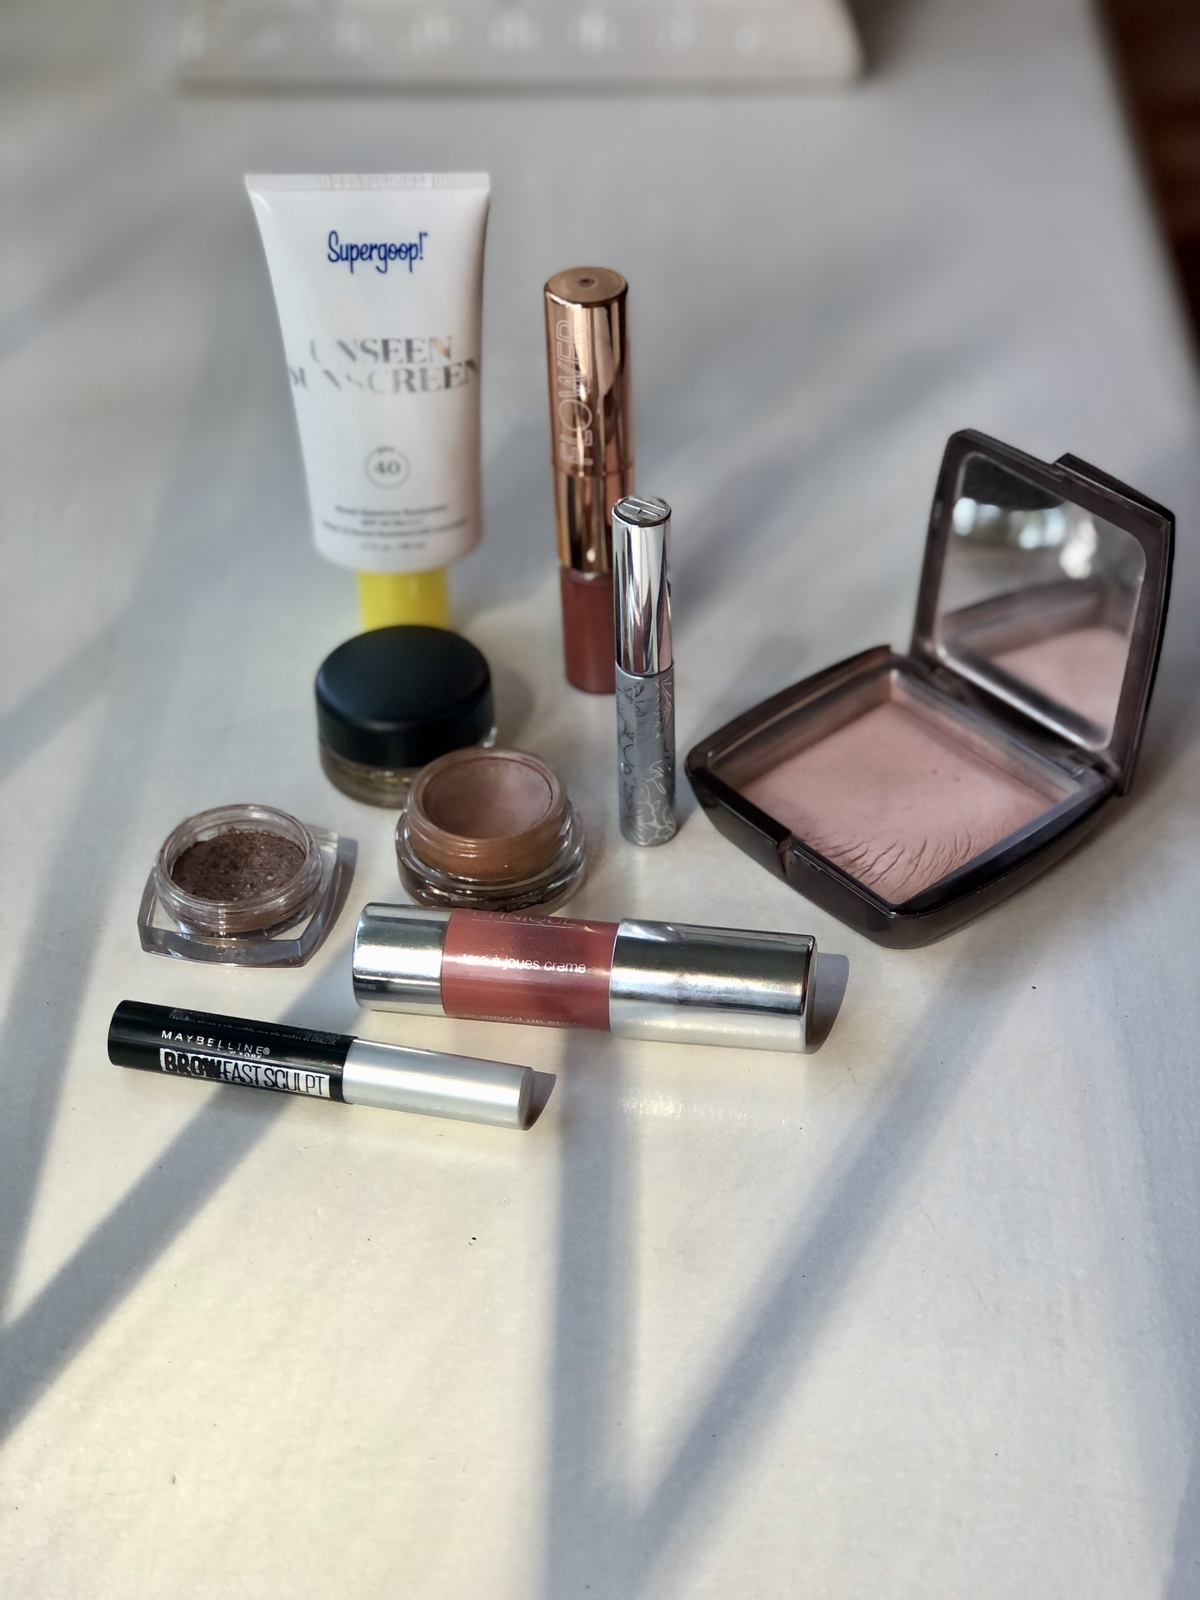 Here are some of my tried & true products